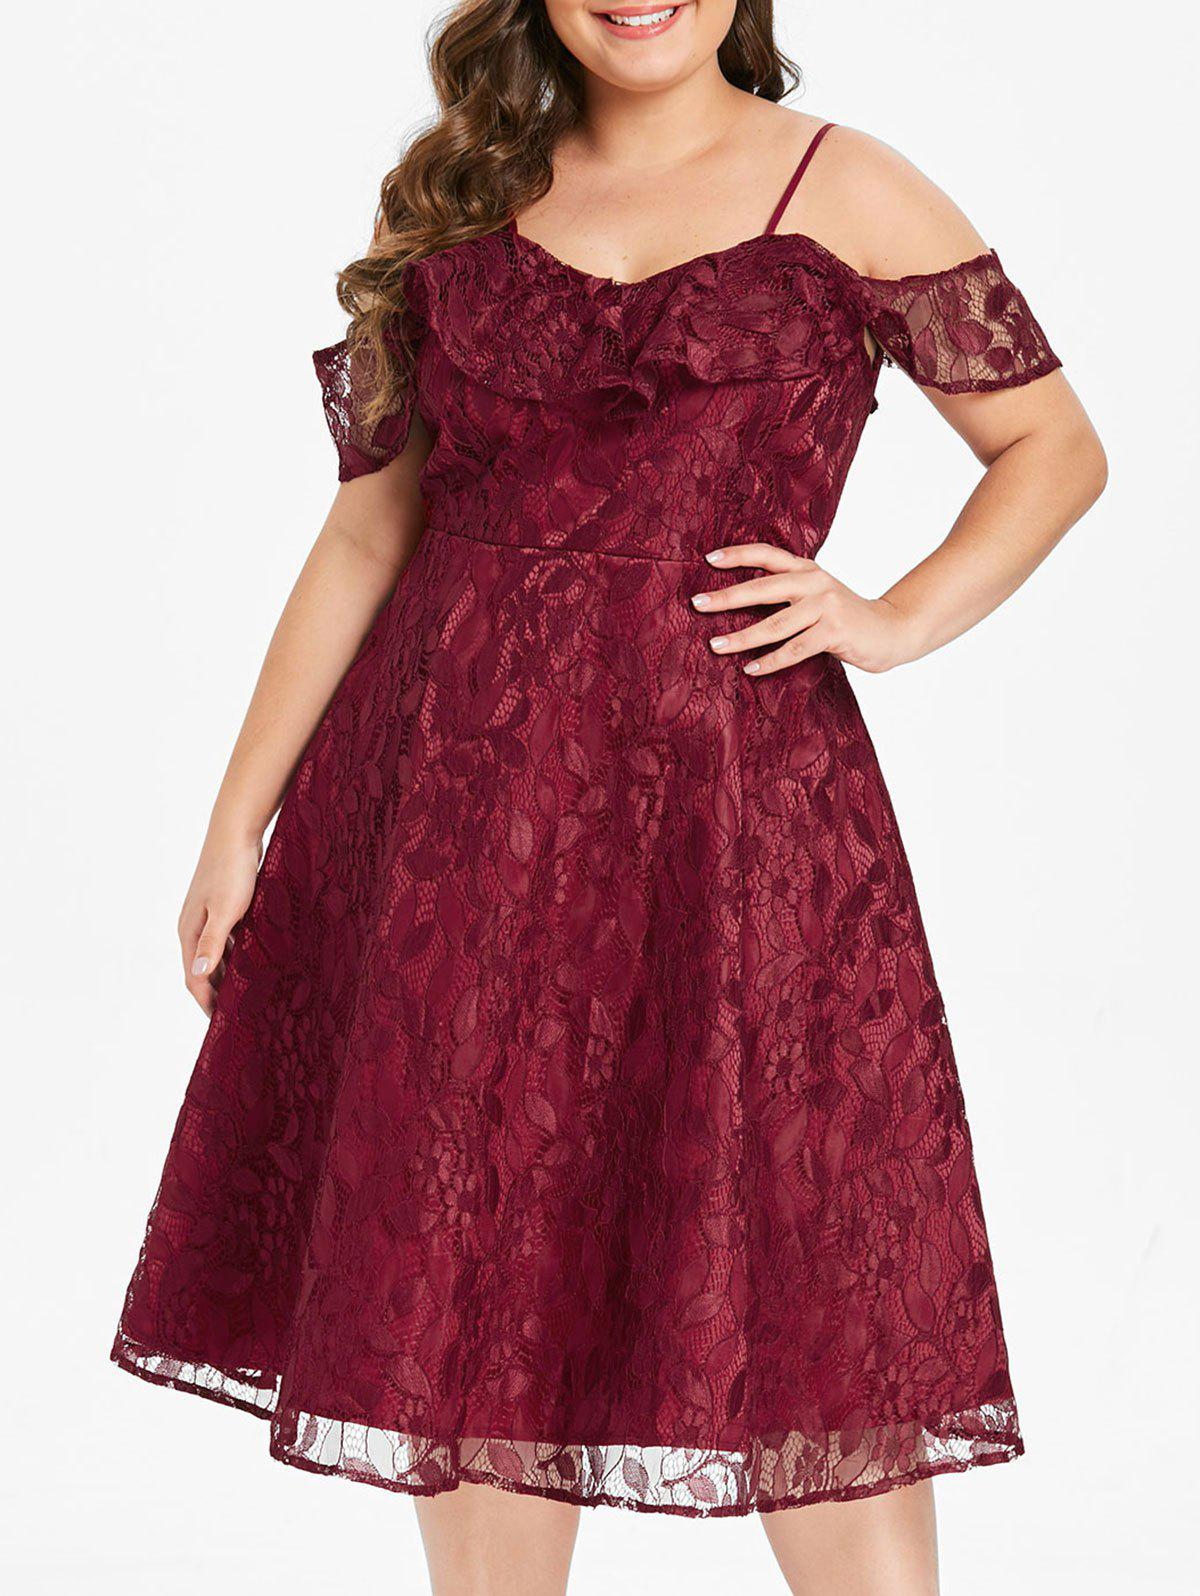 Plus Size High Waisted Lace Dress with Flounce - RED WINE L